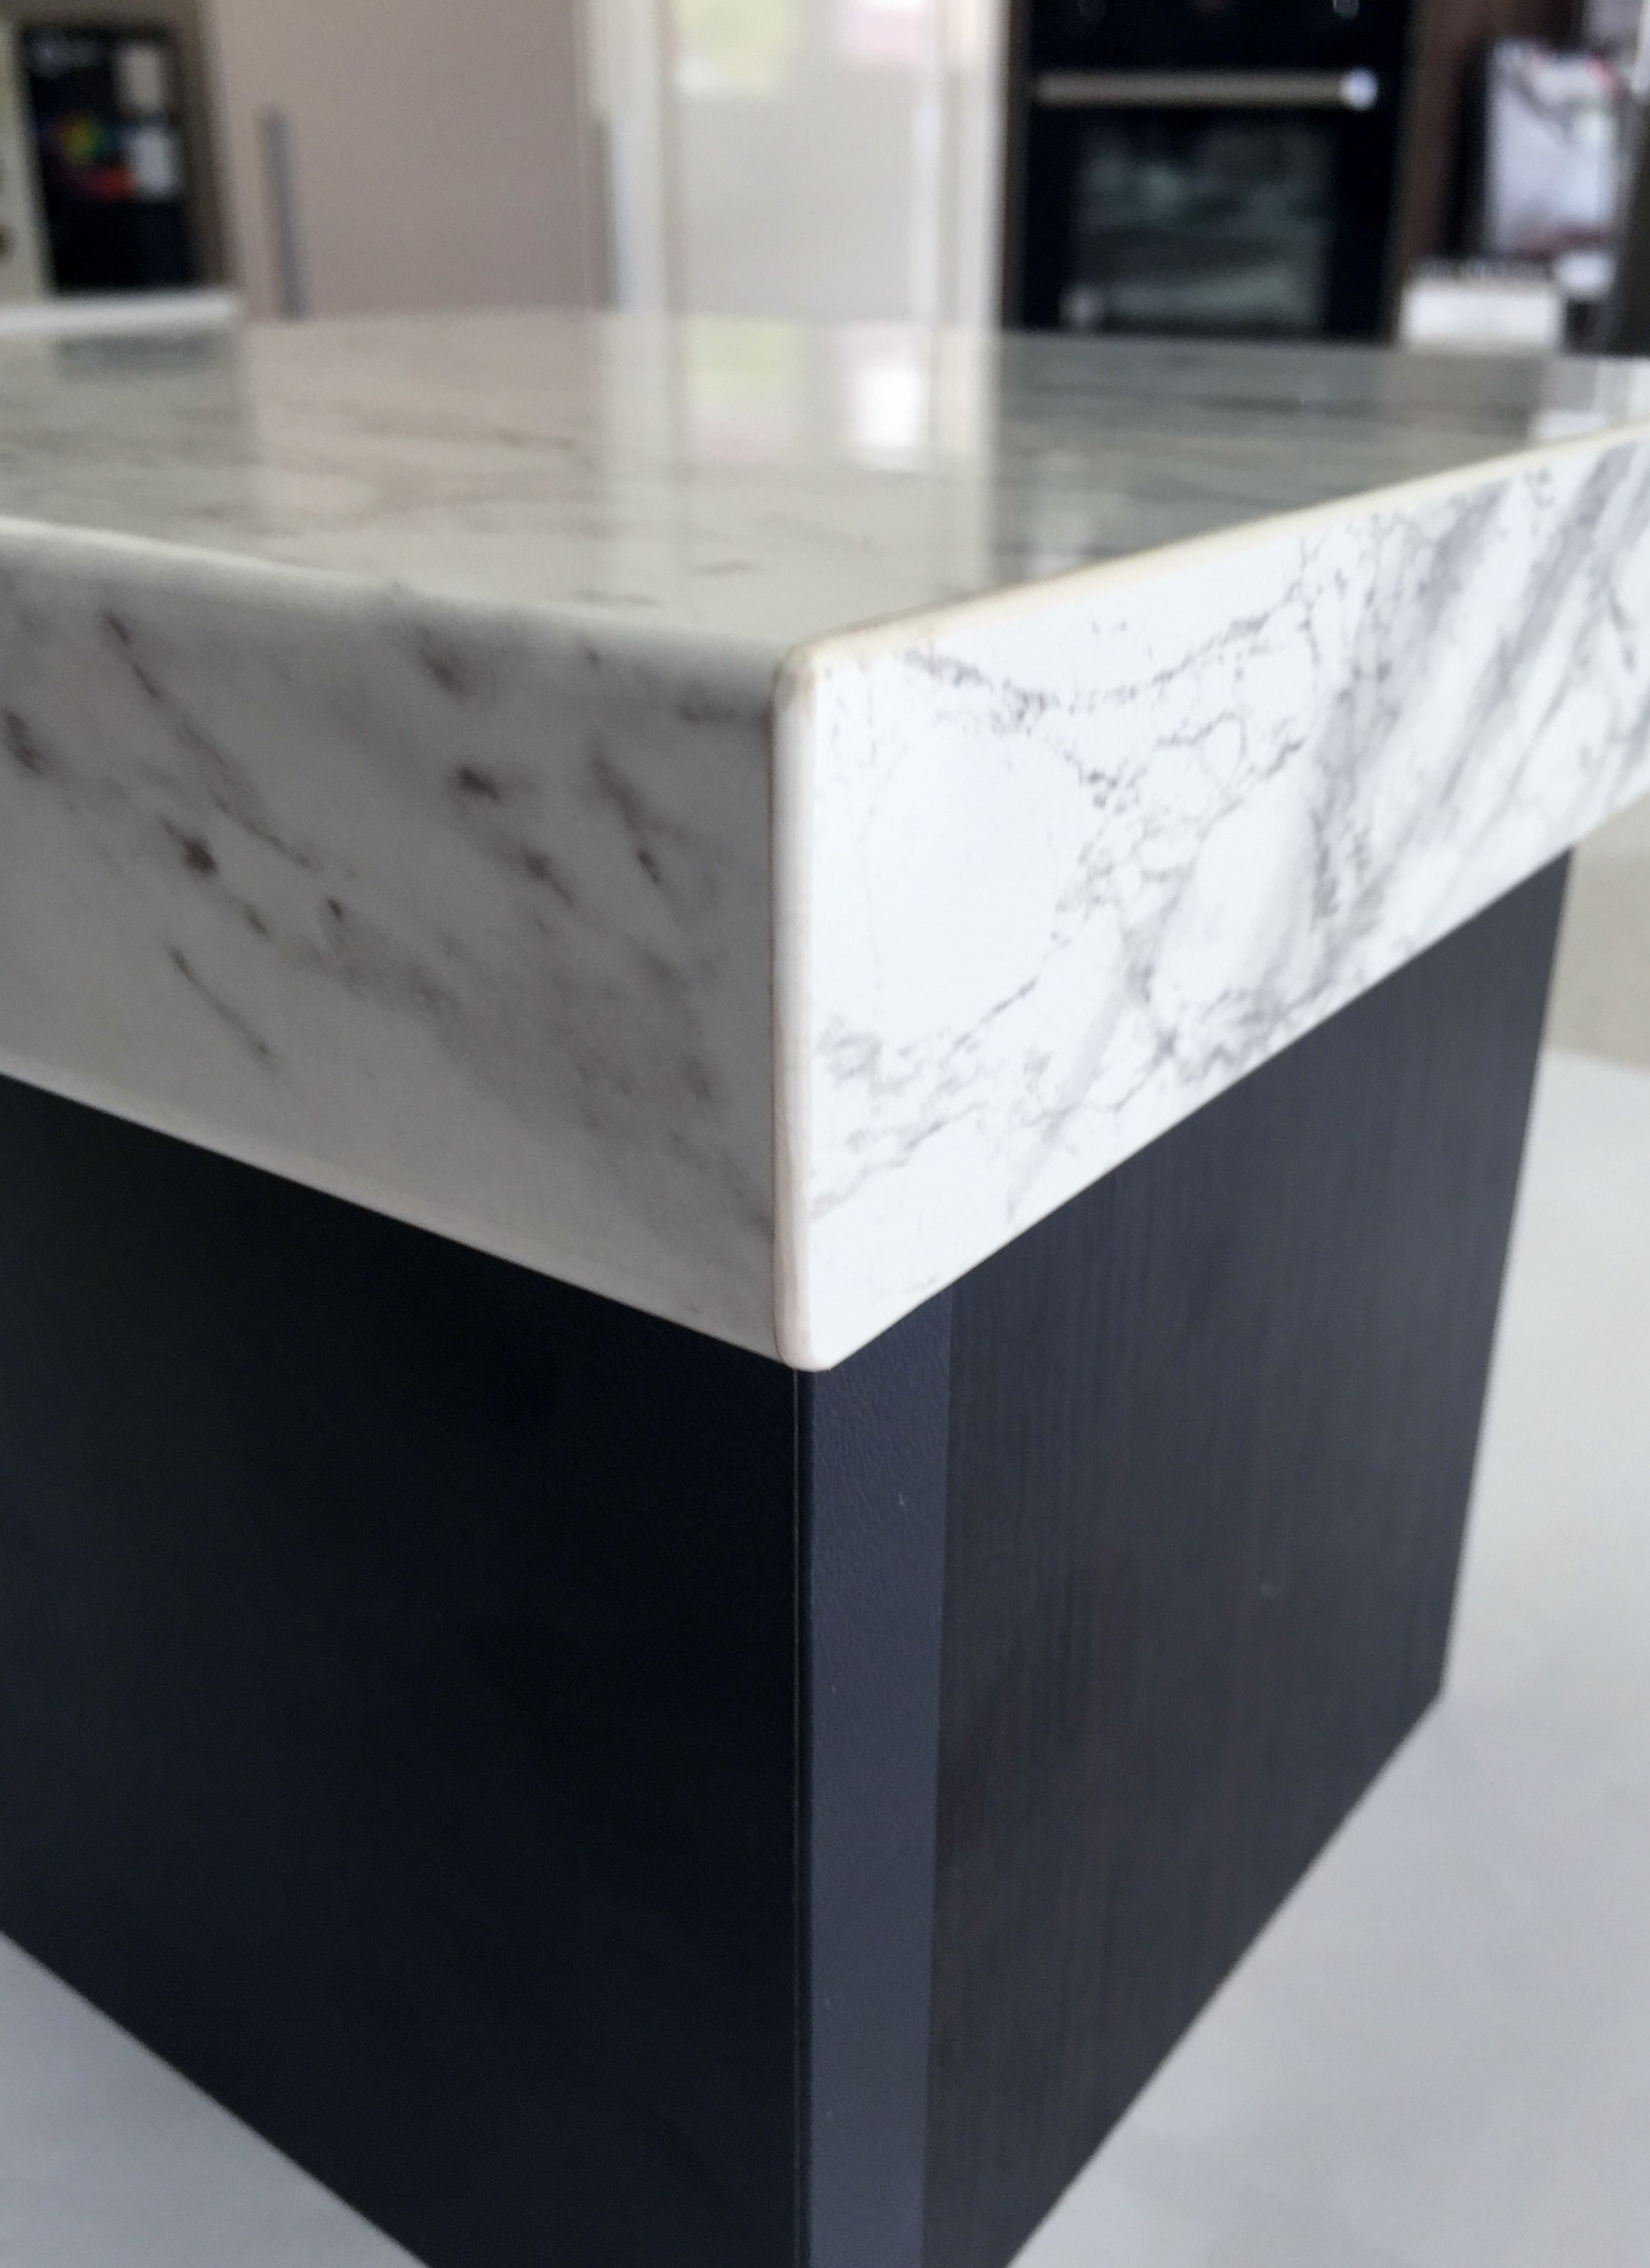 Caesarstone Countertop Thickness Divine Renovations Benchtops Laminate 33mm Thick